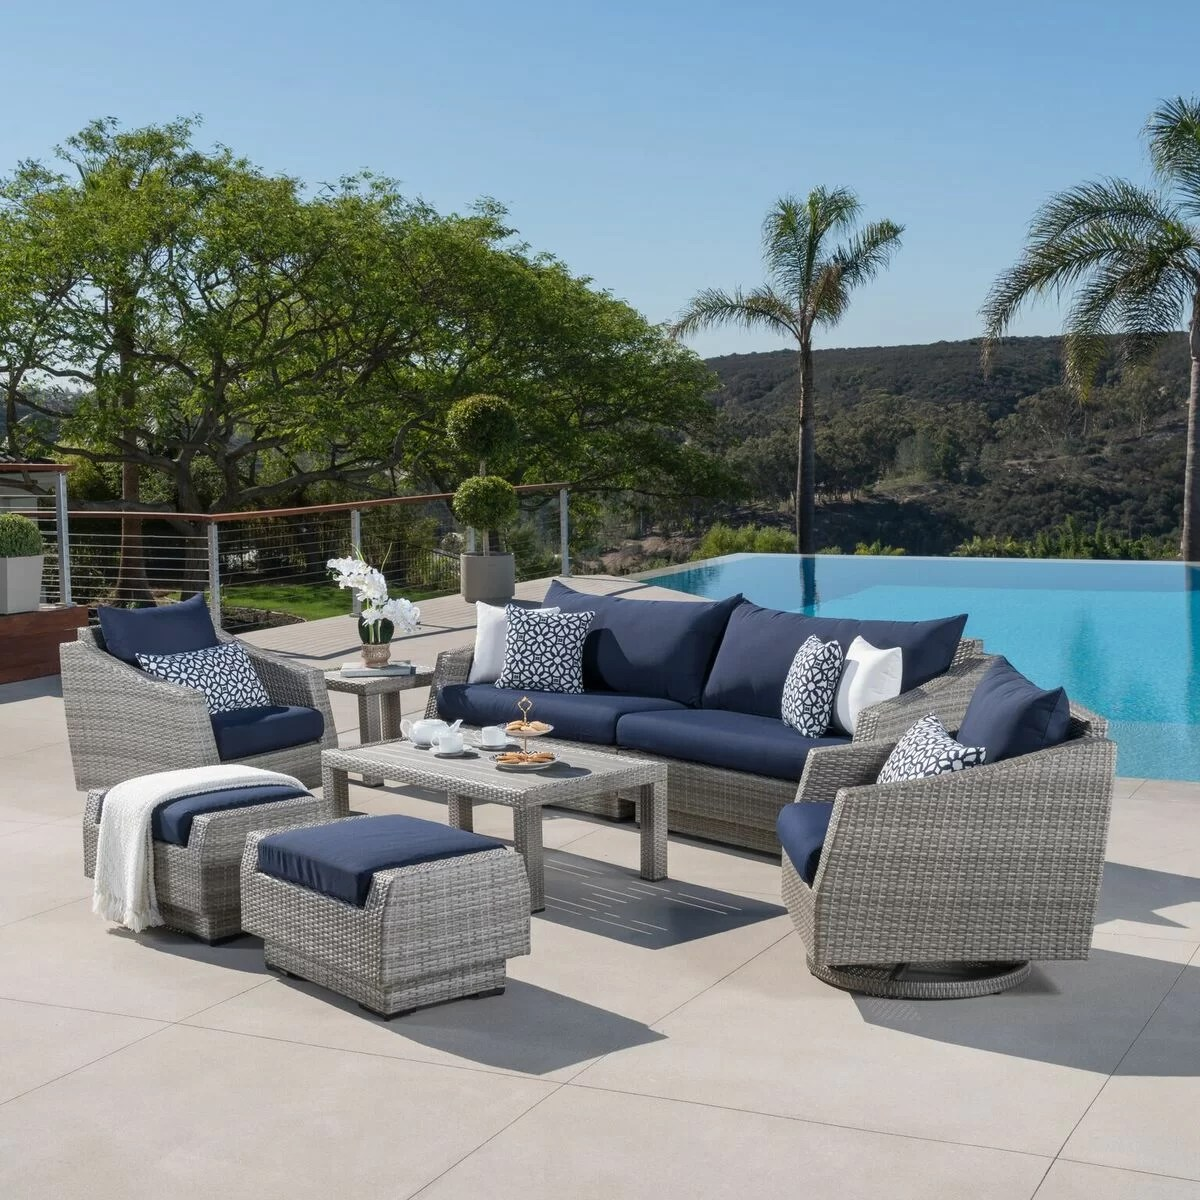 Owen 5 Piece Rattan Sofa Set With Cushions Greenfield Deluxe 8 Piece Rattan Sunbrella Sofa Seating Group With Cushions